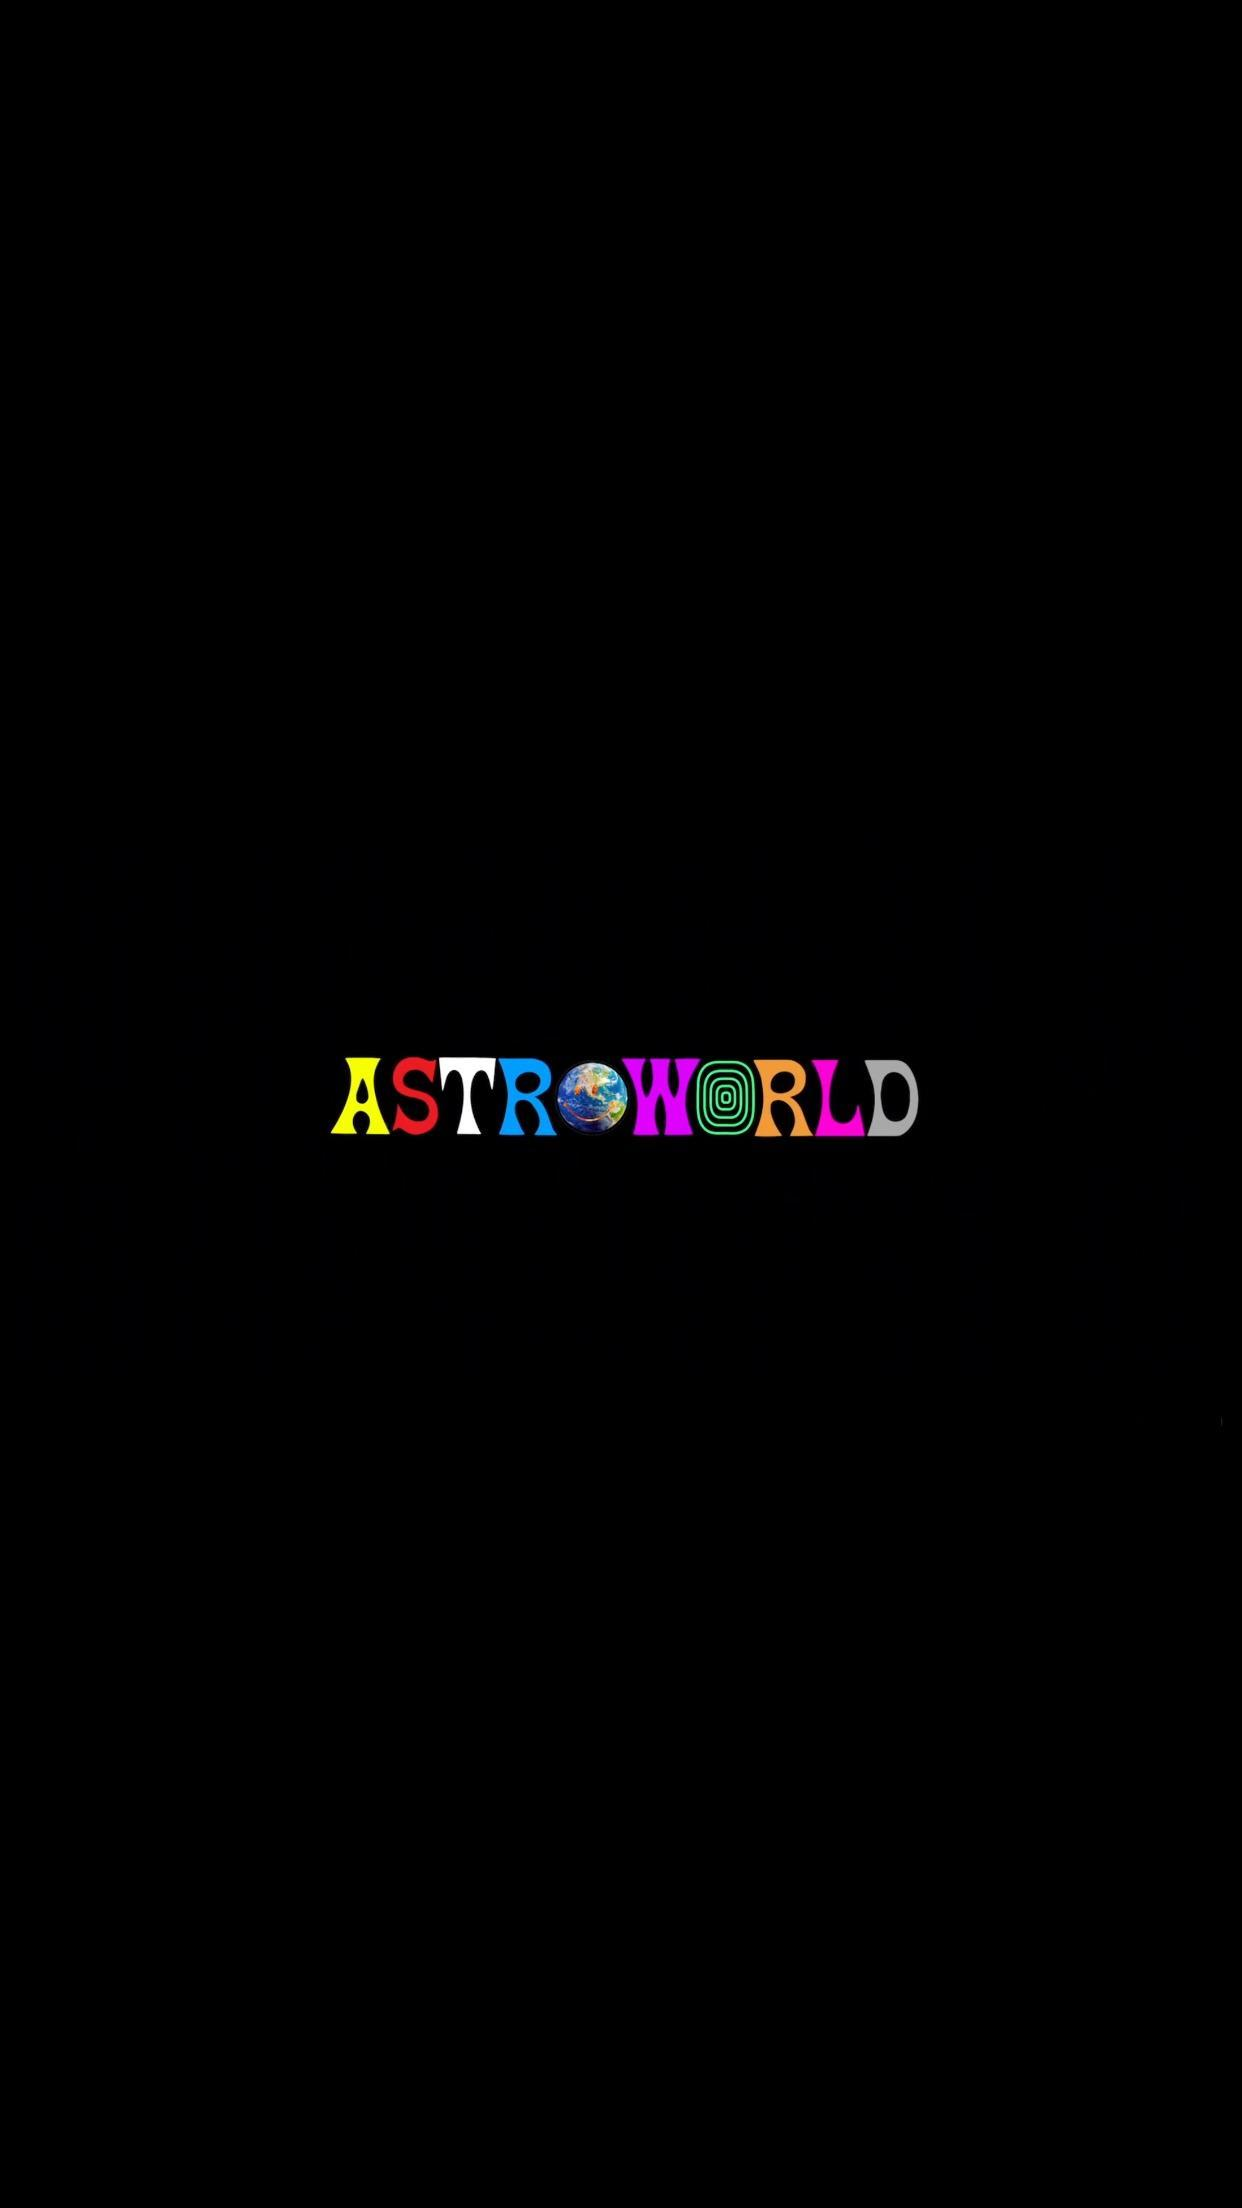 How to Choose the Right Astroworld Wallpaper For Your iPhone